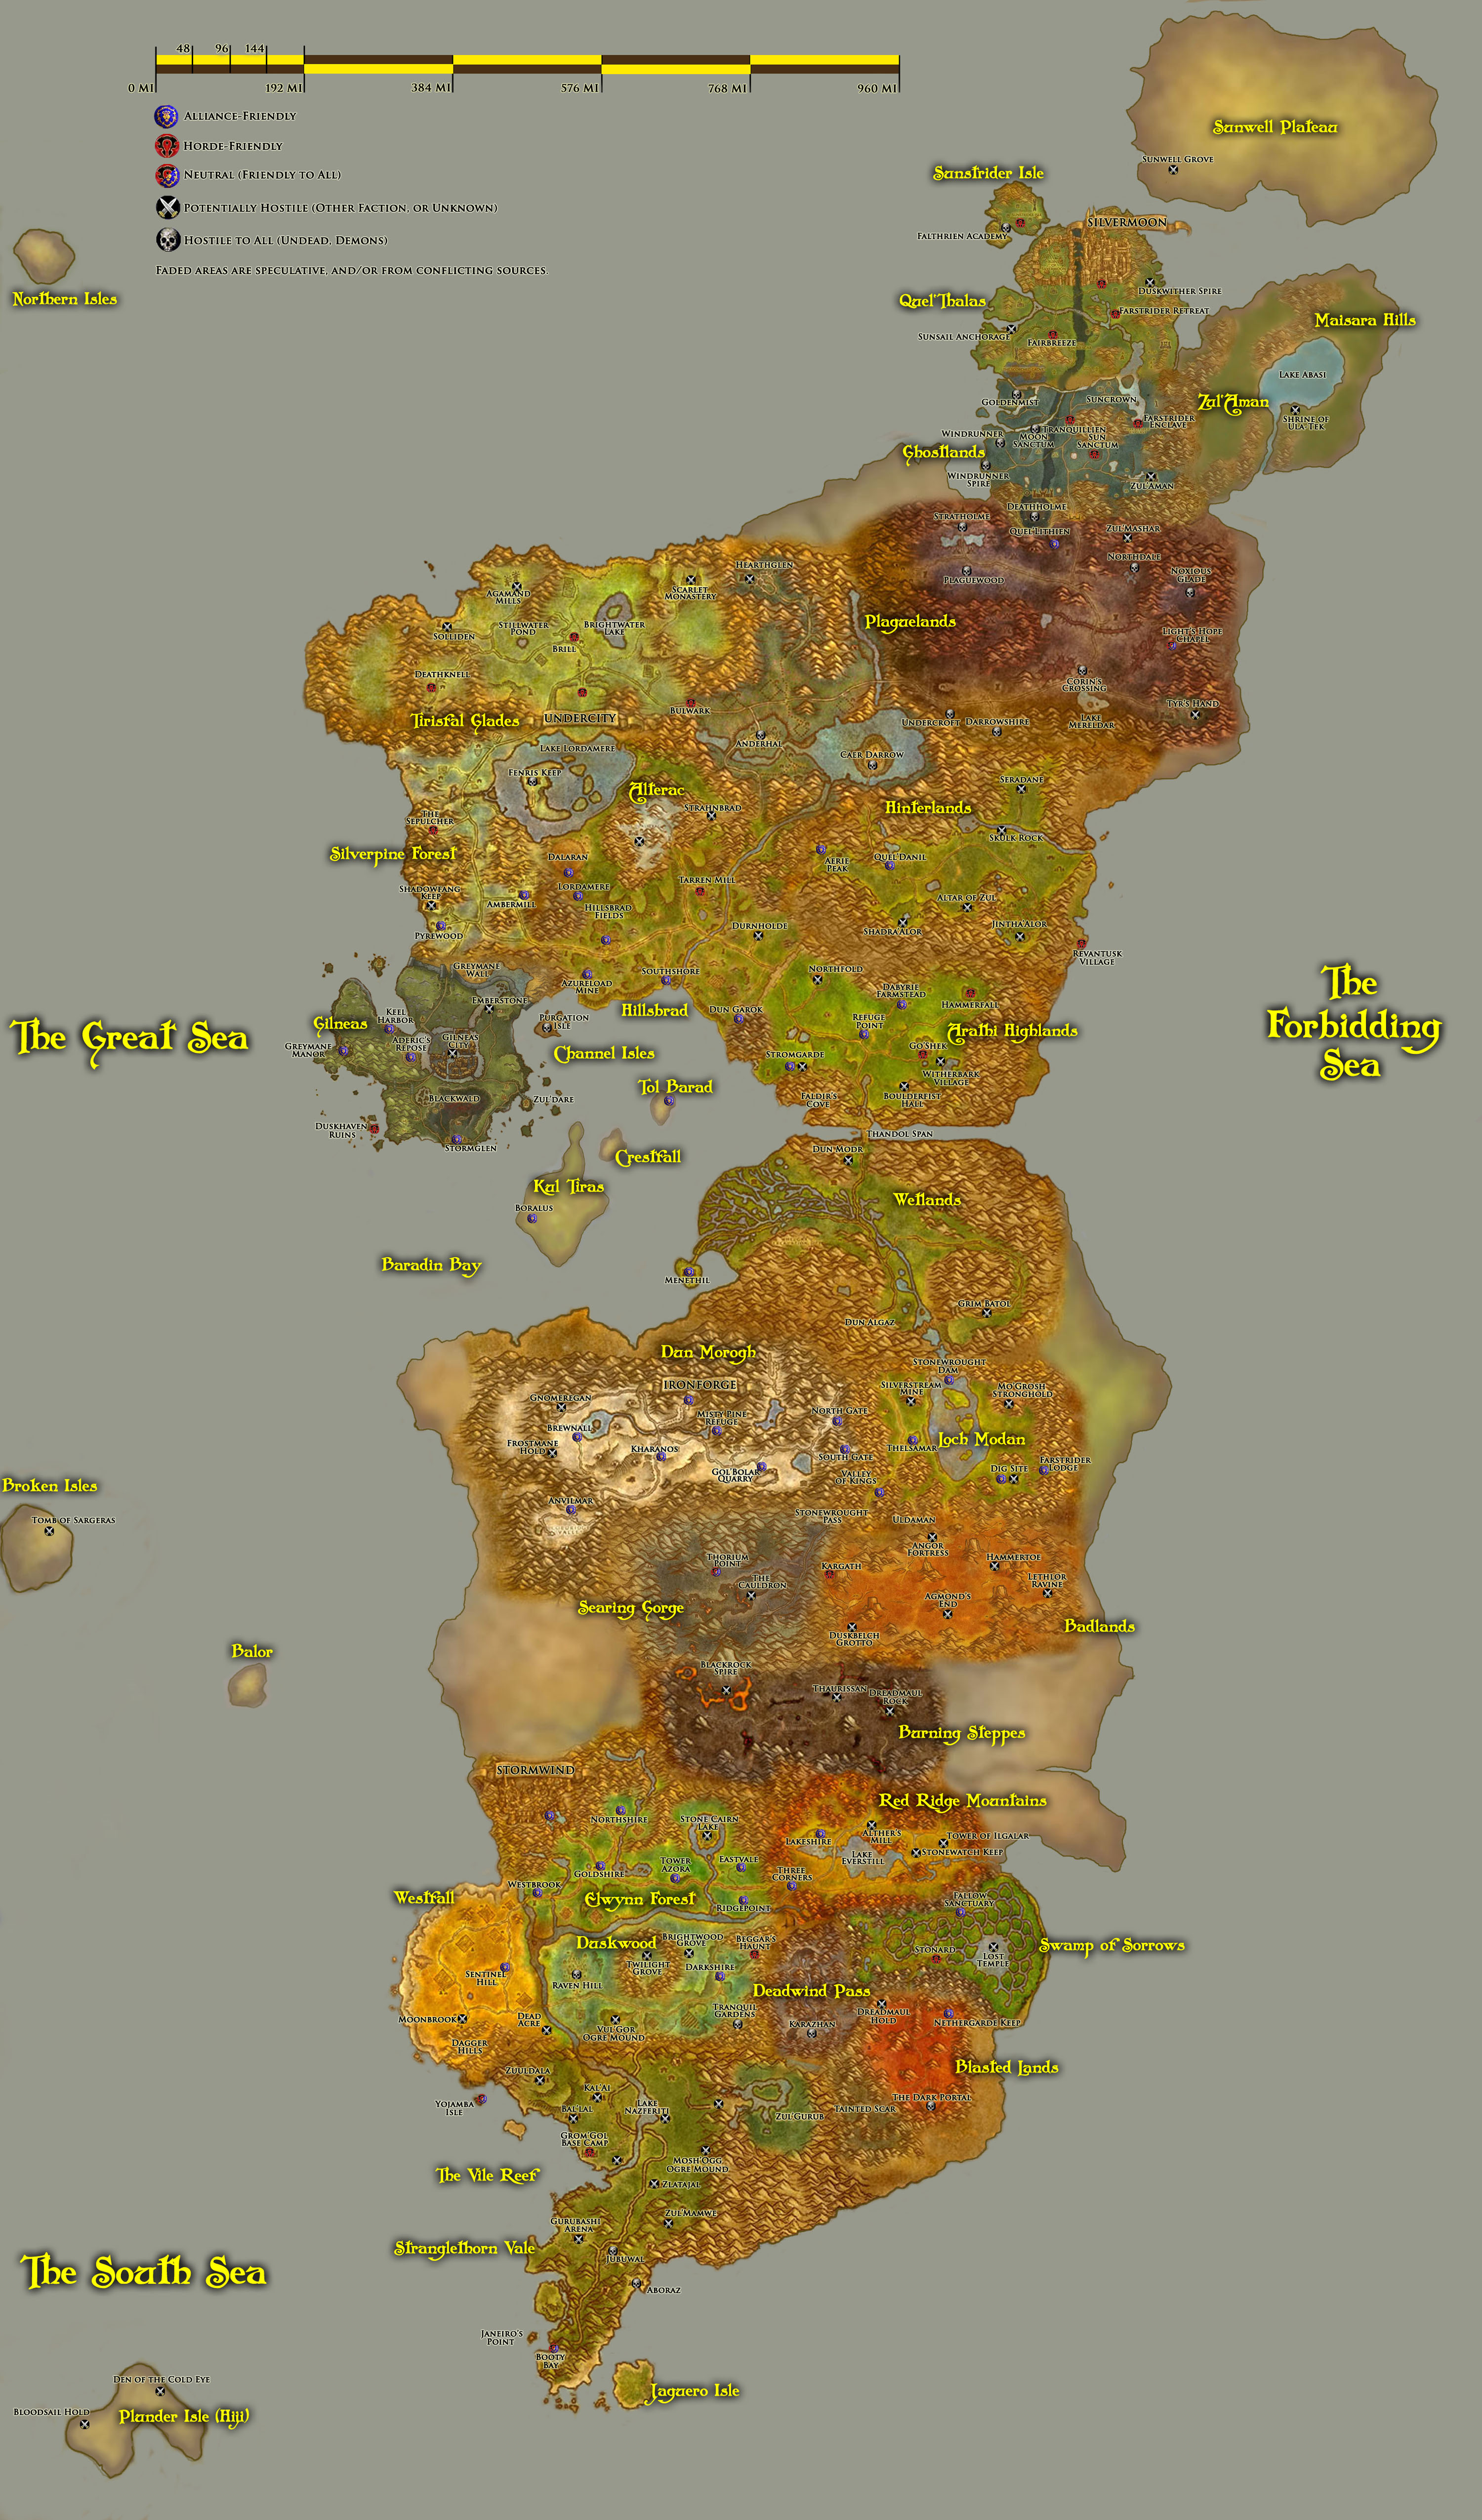 Index of /images/wow/maps on molten core map, eastern kingdoms map, guild wars 2 gendarran fields map, dragonblight map, stormwind map, undercity map, ashenvale map, azeroth map, netherstorm map, darkshore map, desolace map, dustwallow marsh map, thousand needles map, draenor map, orgrimmar map, lordaeron map, wrath of the lich king map, emerald dream map, wow fossil dig sites map, bloodmyst isle map,